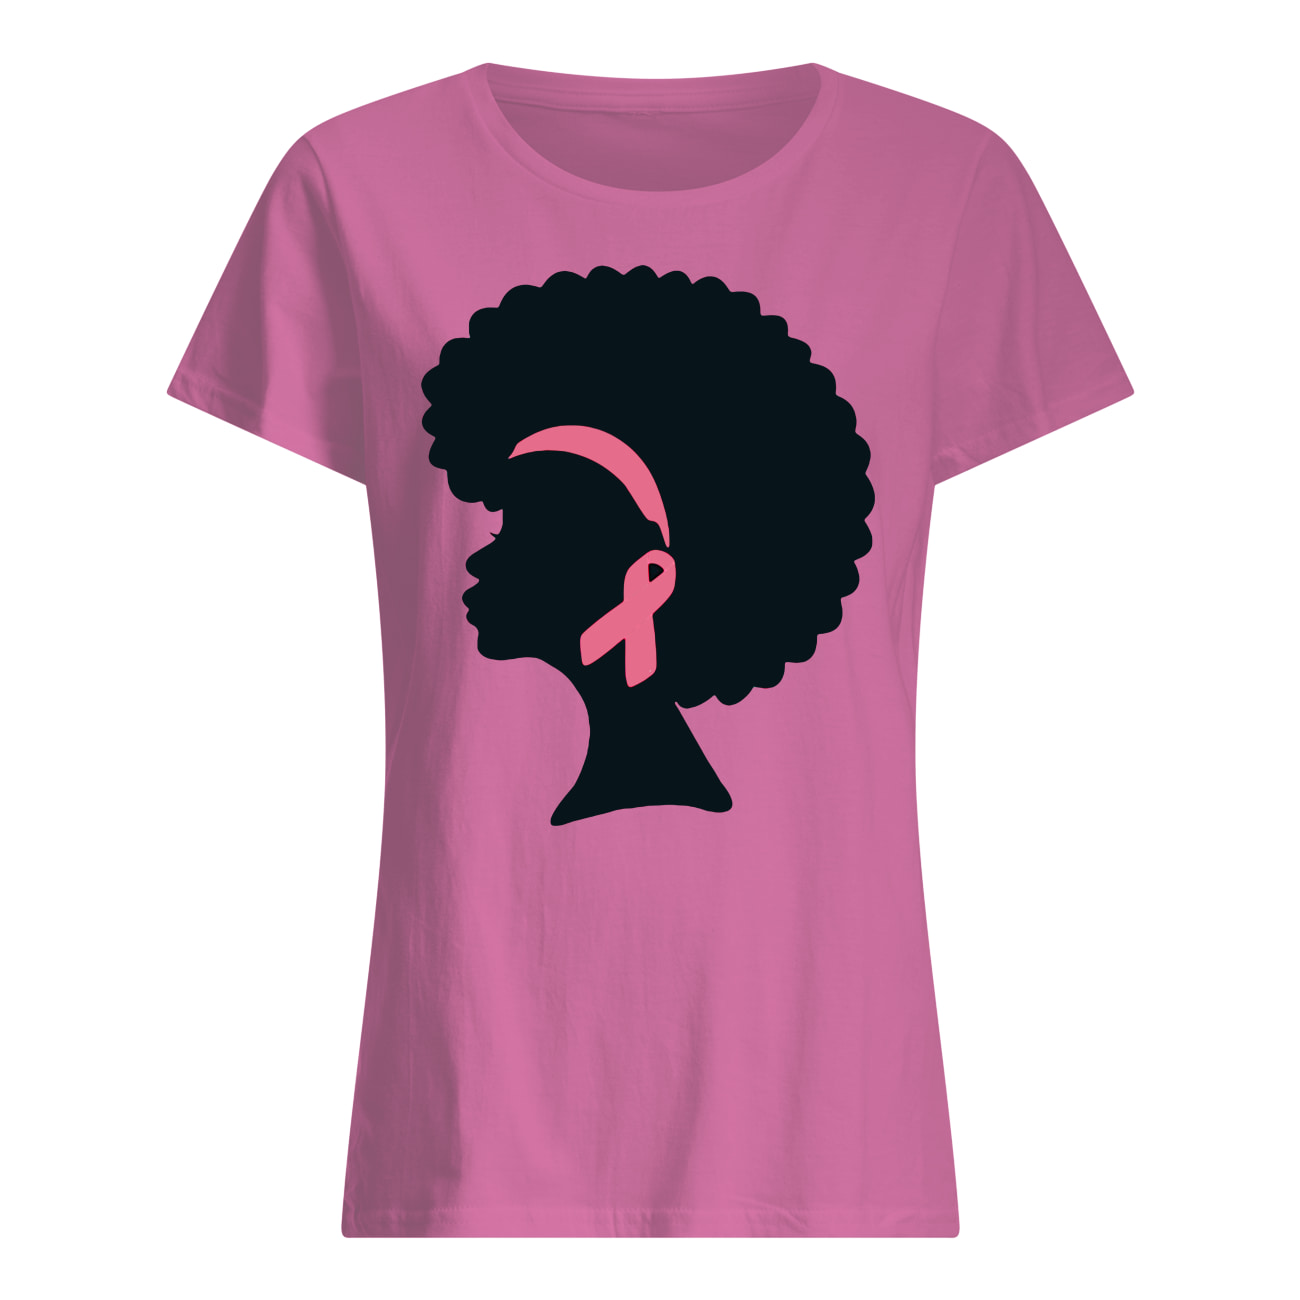 Oprah Winfrey wear pink breast cancer shirt